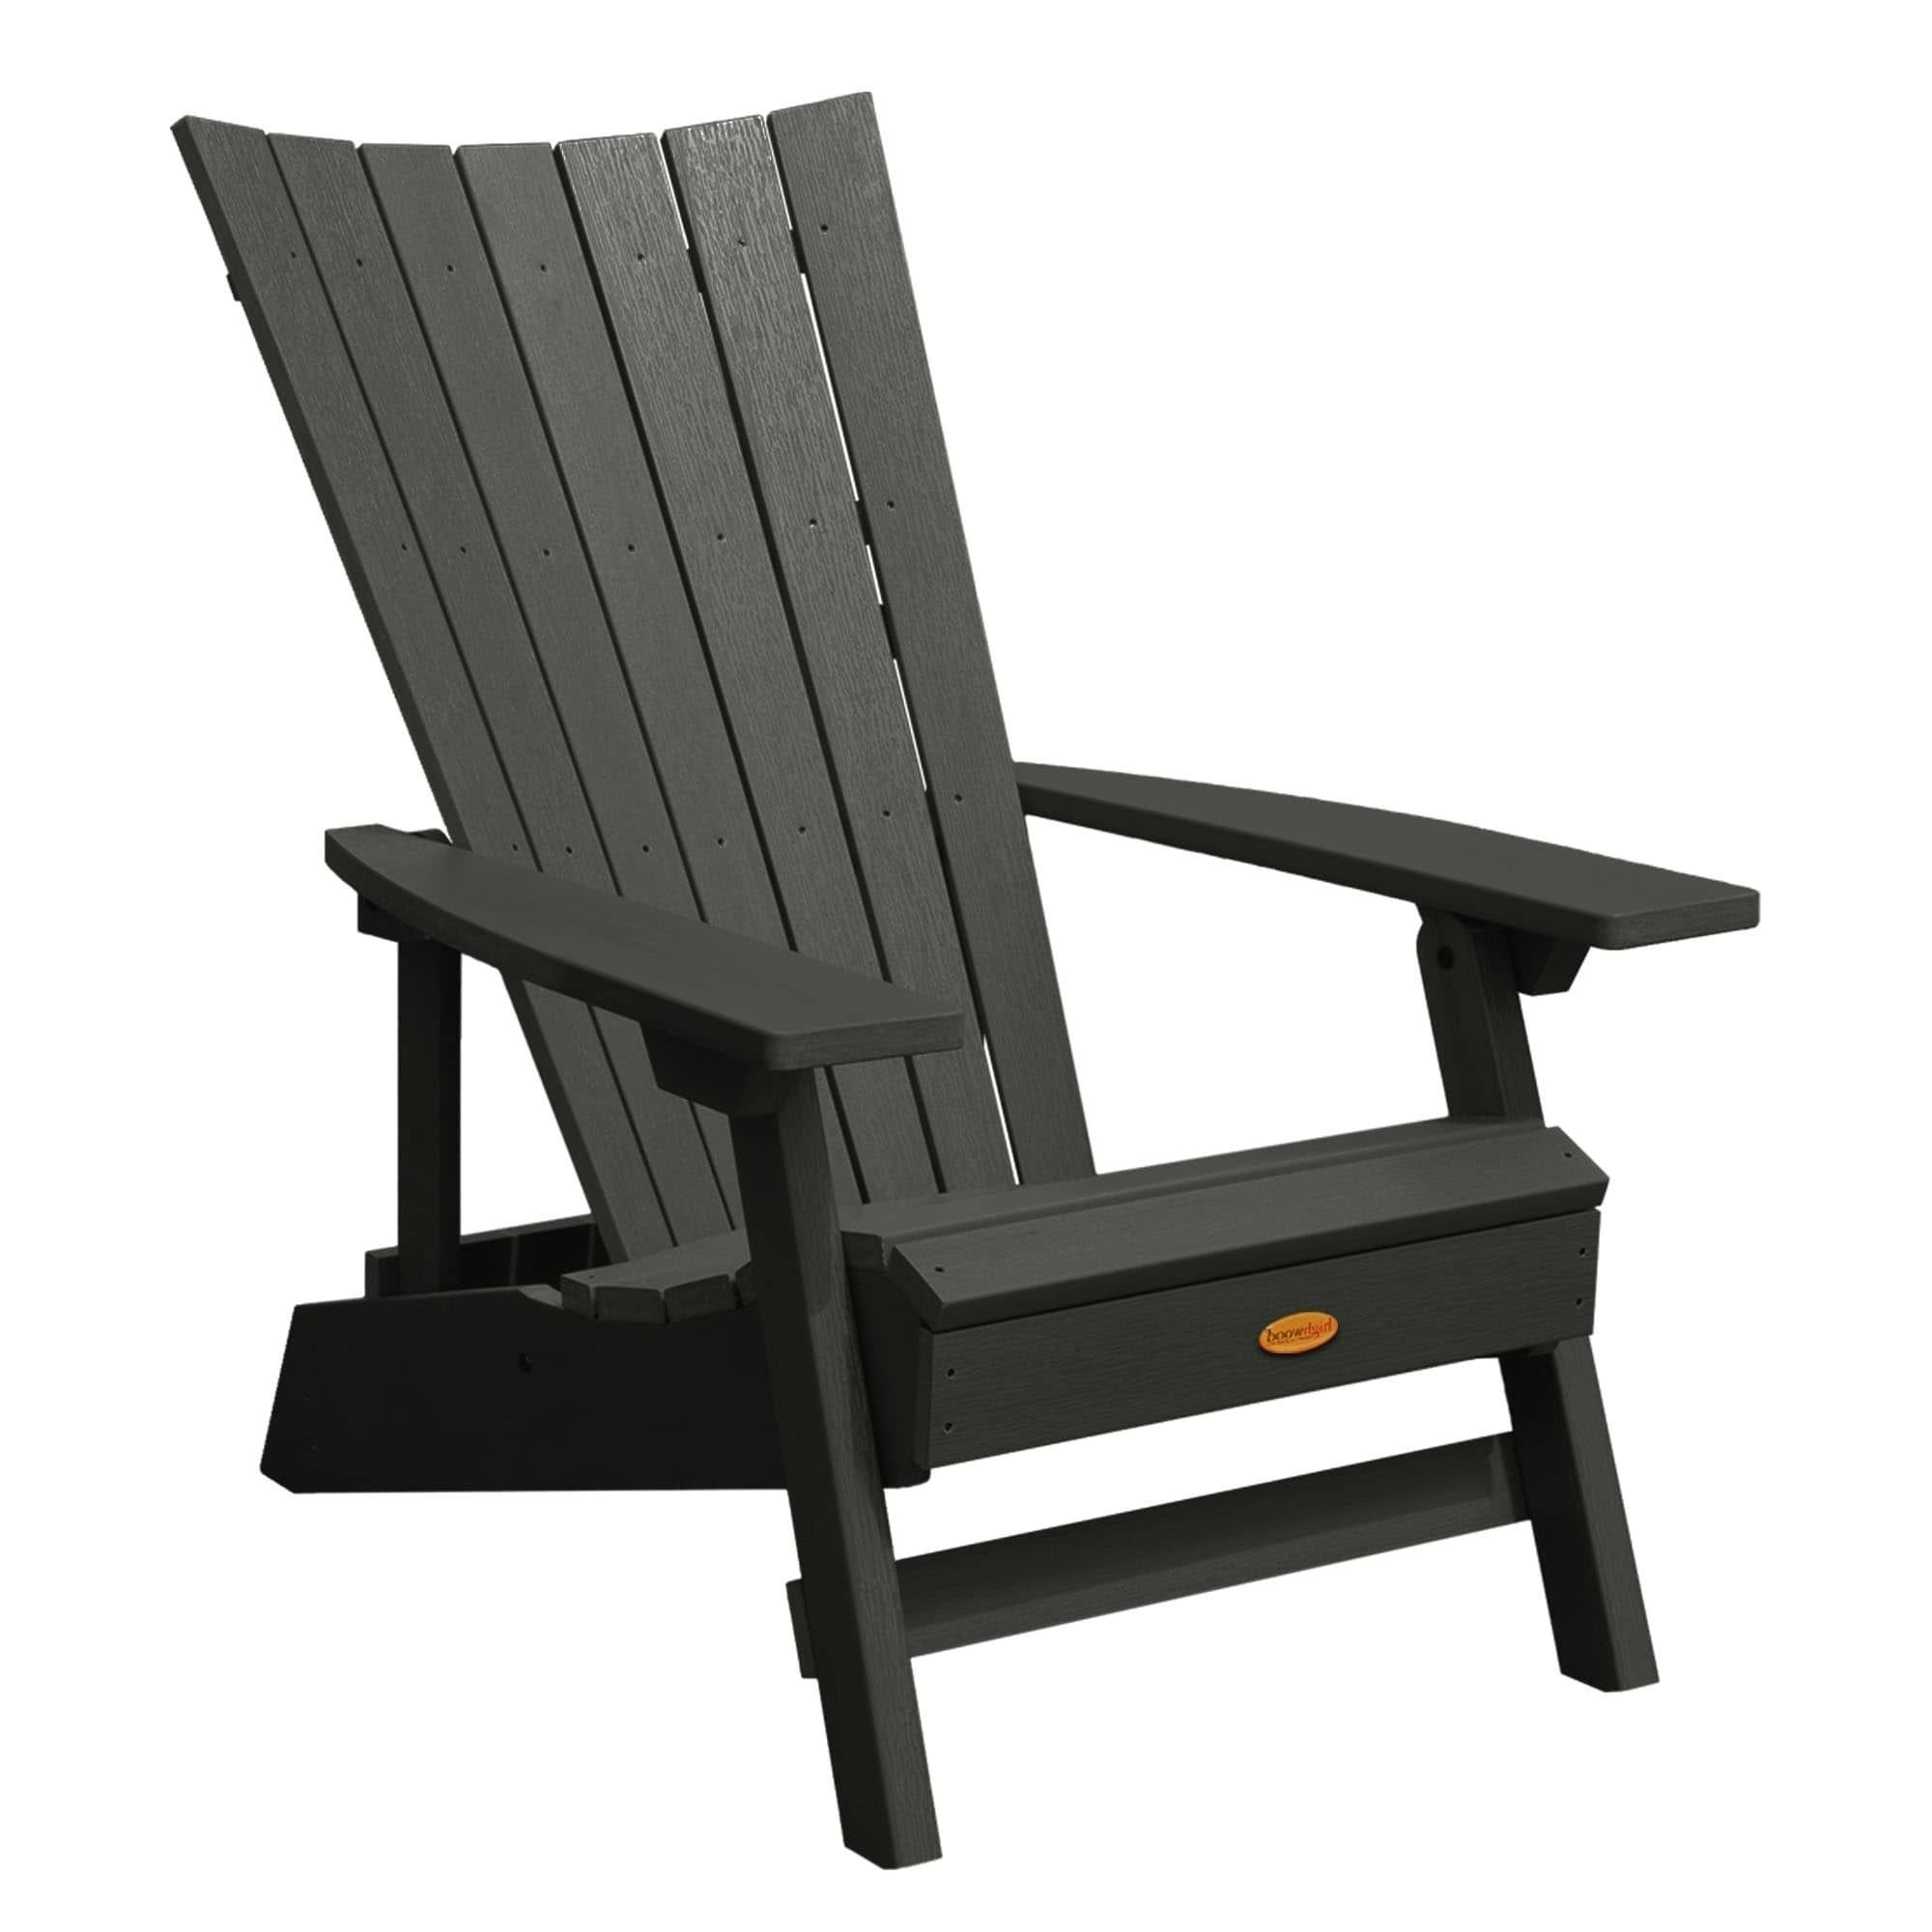 Highwood Manhattan Beach Adirondack Chair (Black), Size Single Within Fashionable Manhattan Patio Grey Rocking Chairs (View 6 of 15)